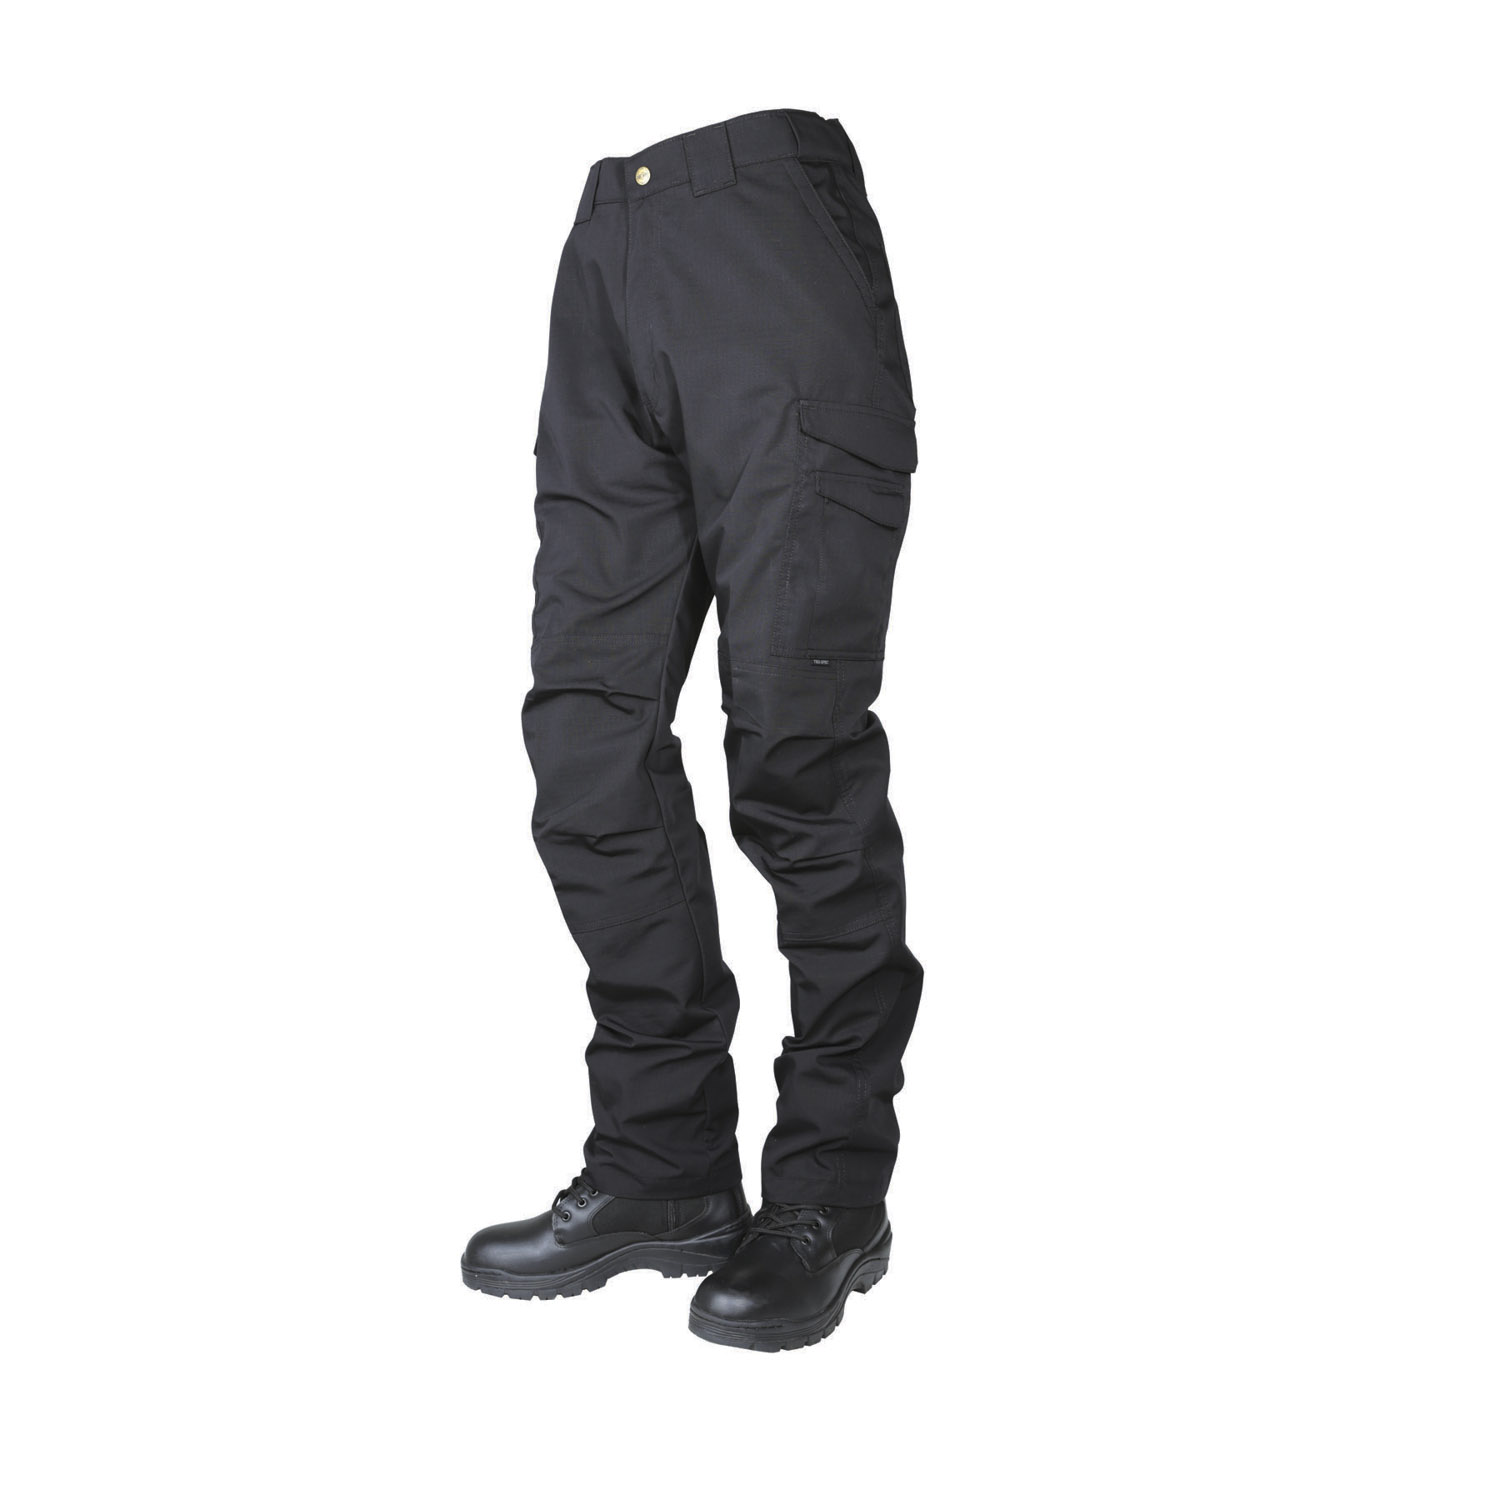 TRU-SPEC 24-7 Series Guardian Pants